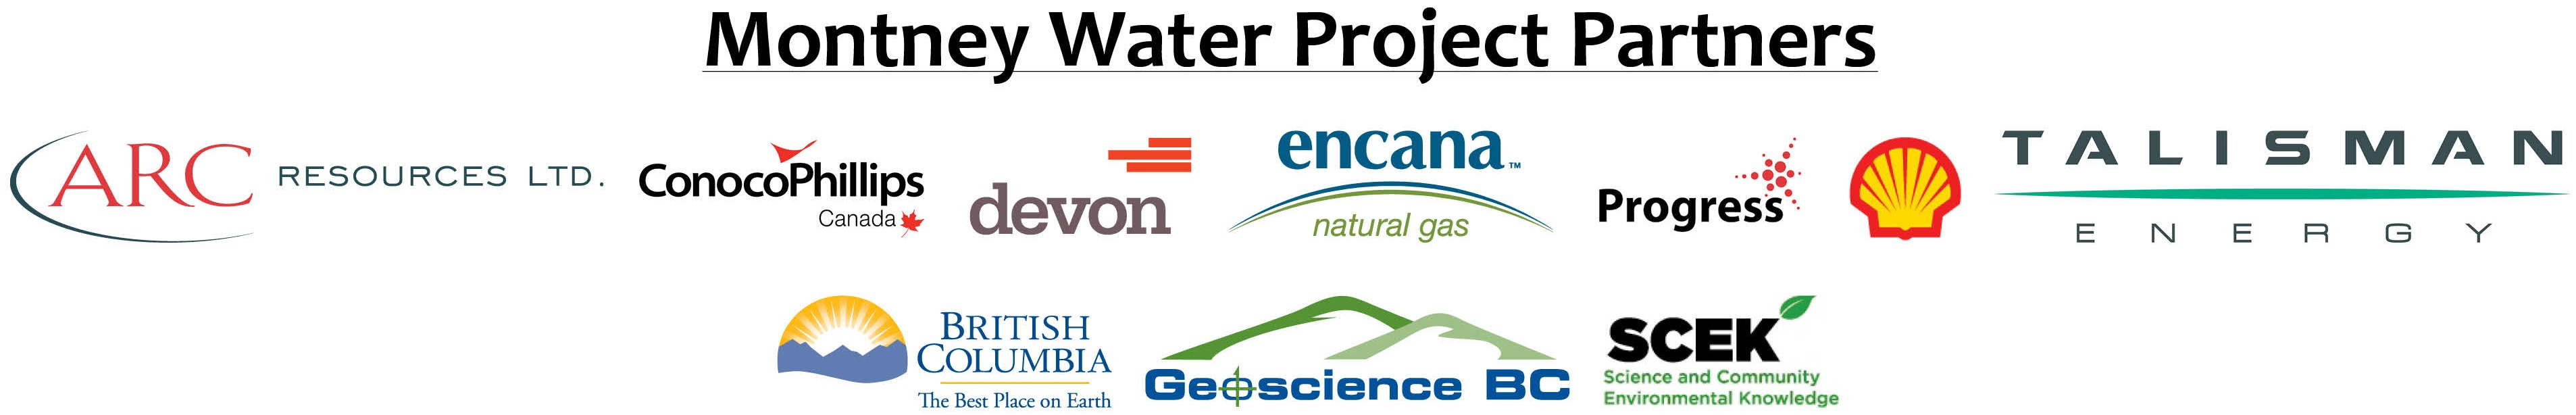 Montney Water Project Partners